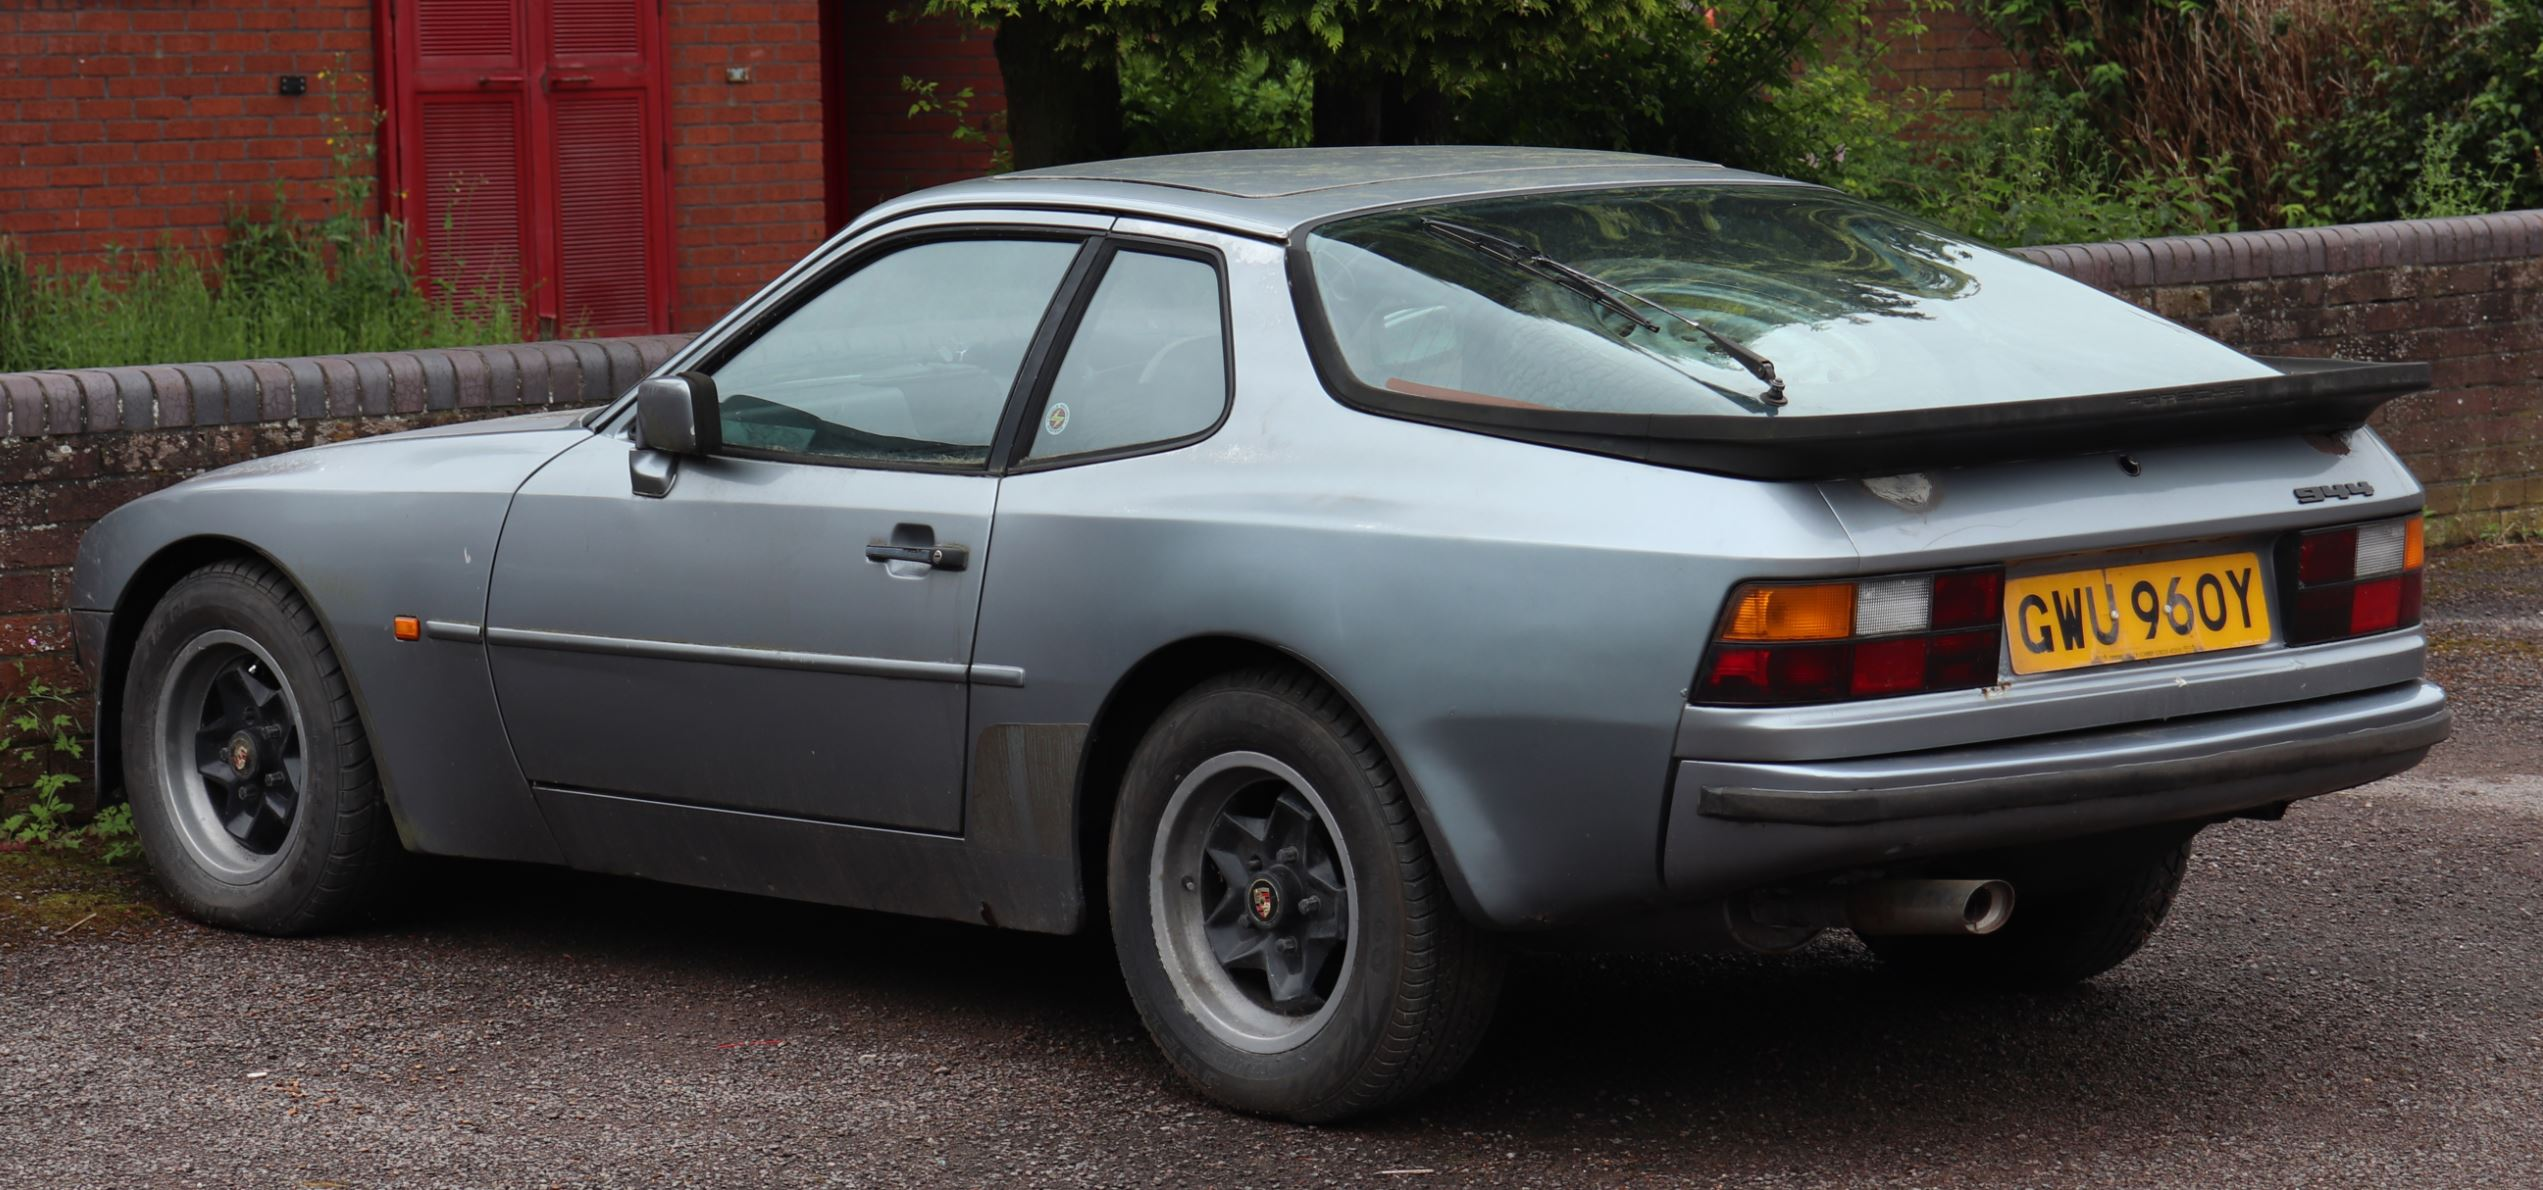 Porsche 944 Buyer S Guide And History 2020 Garage Dreams